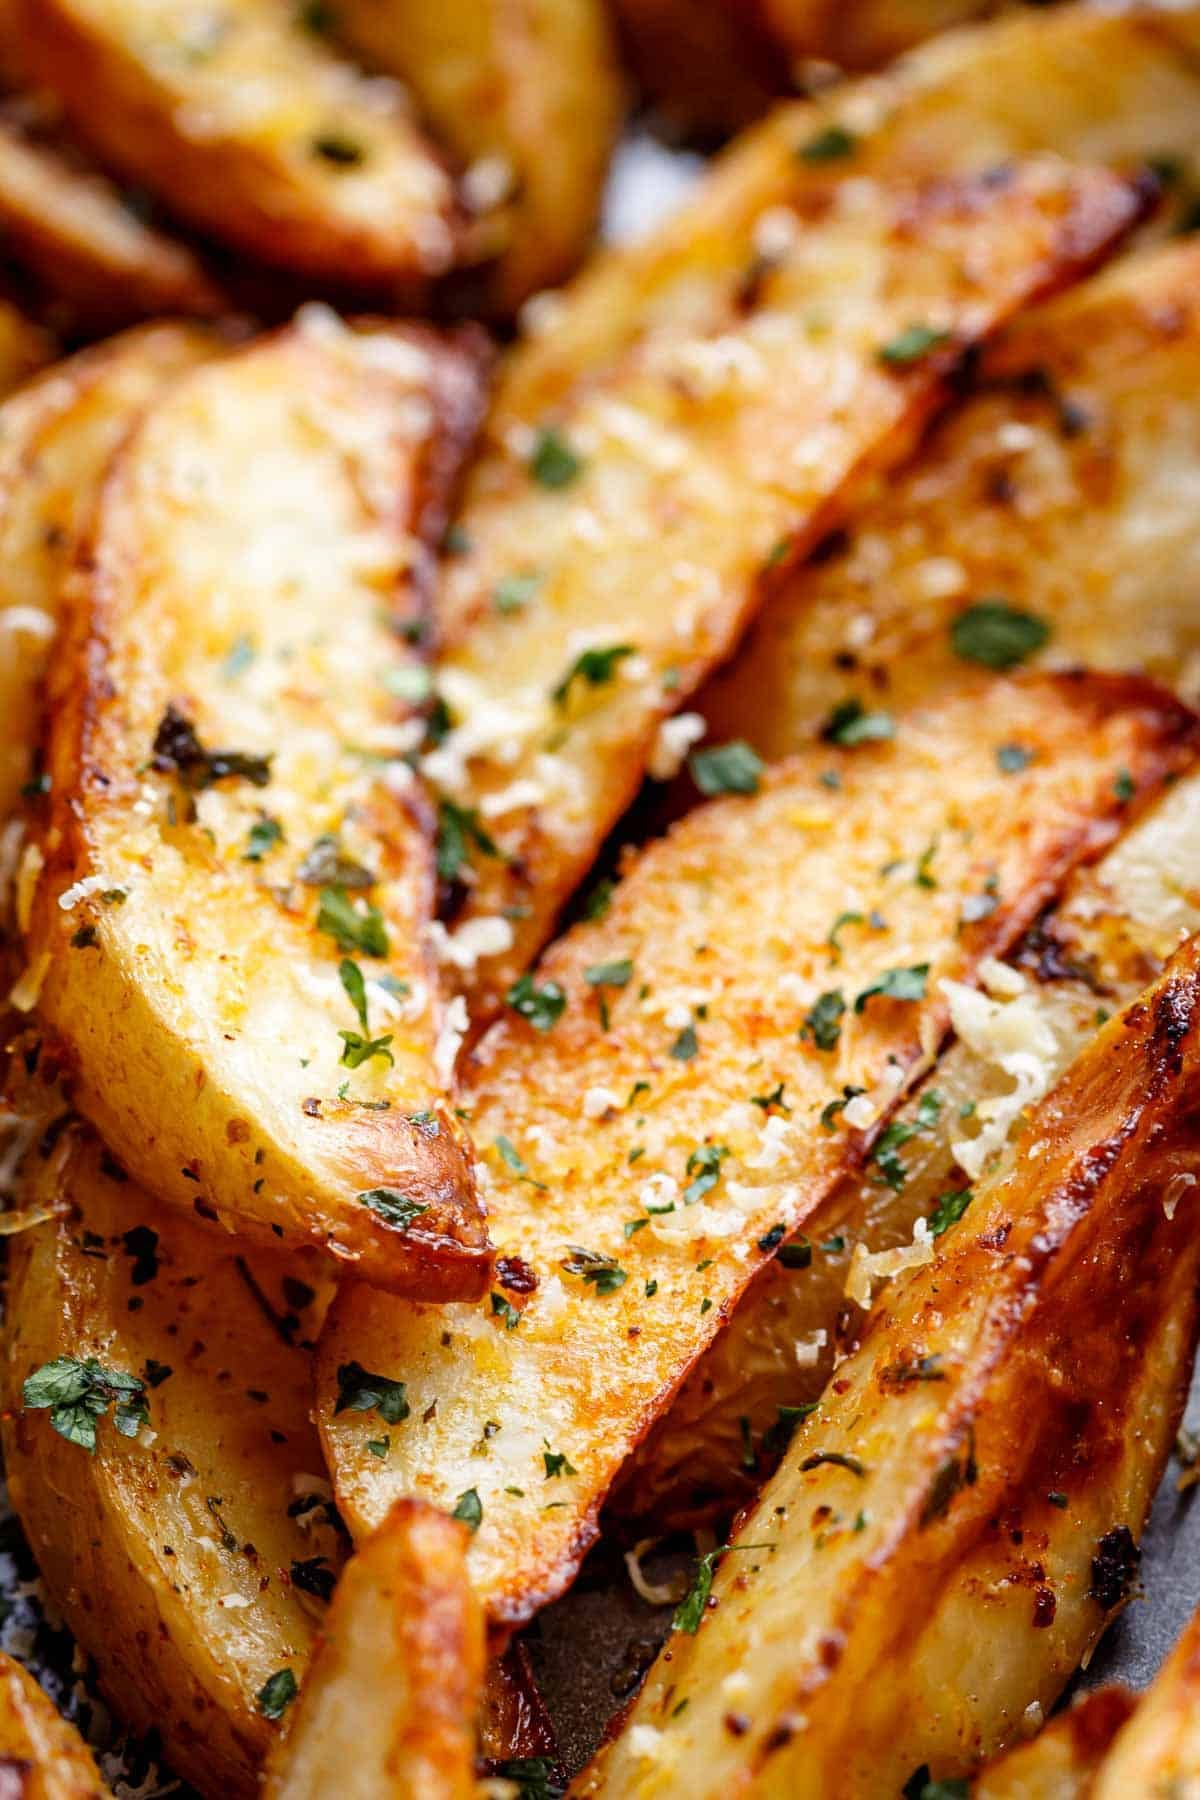 These Potato Wedges Are Baked Not Fried They Have Loads Of Cheese And Garlic And Are Soft And In 2021 Wedges Recipe Garlic Baked Potatoes Baked Potato Wedges Recipe